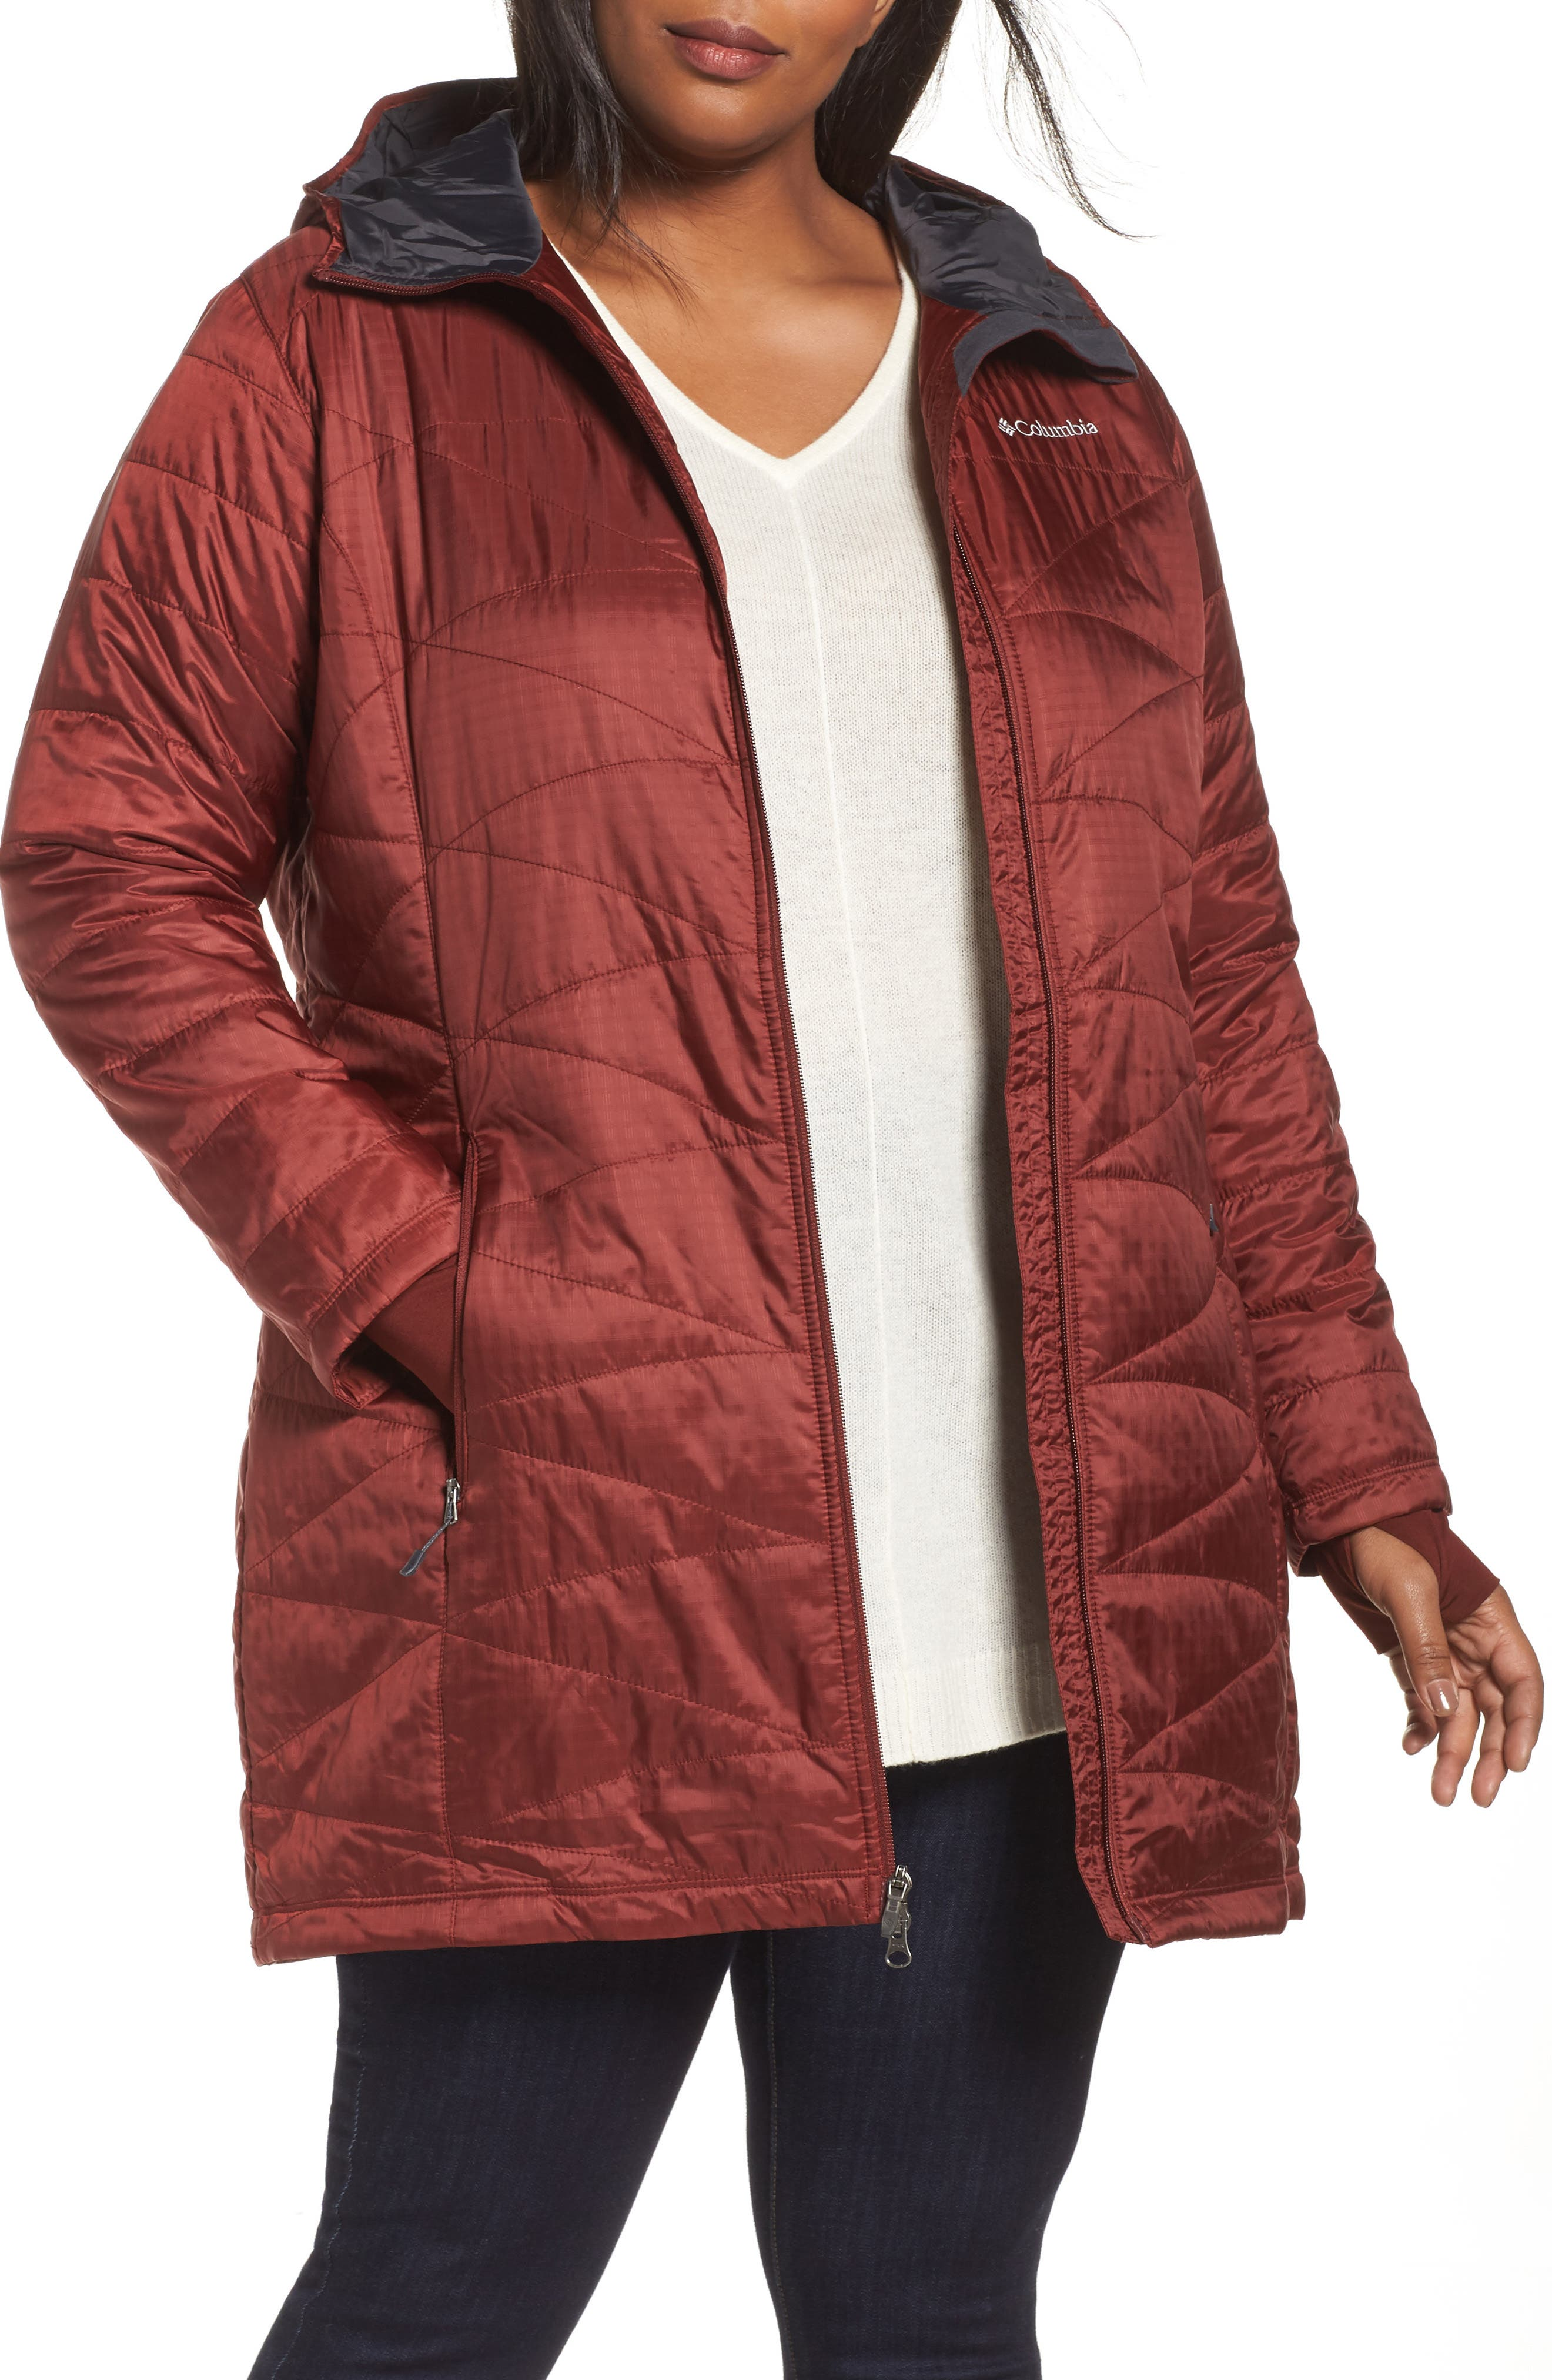 Mighty Lite Hooded Jacket,                             Main thumbnail 1, color,                             637